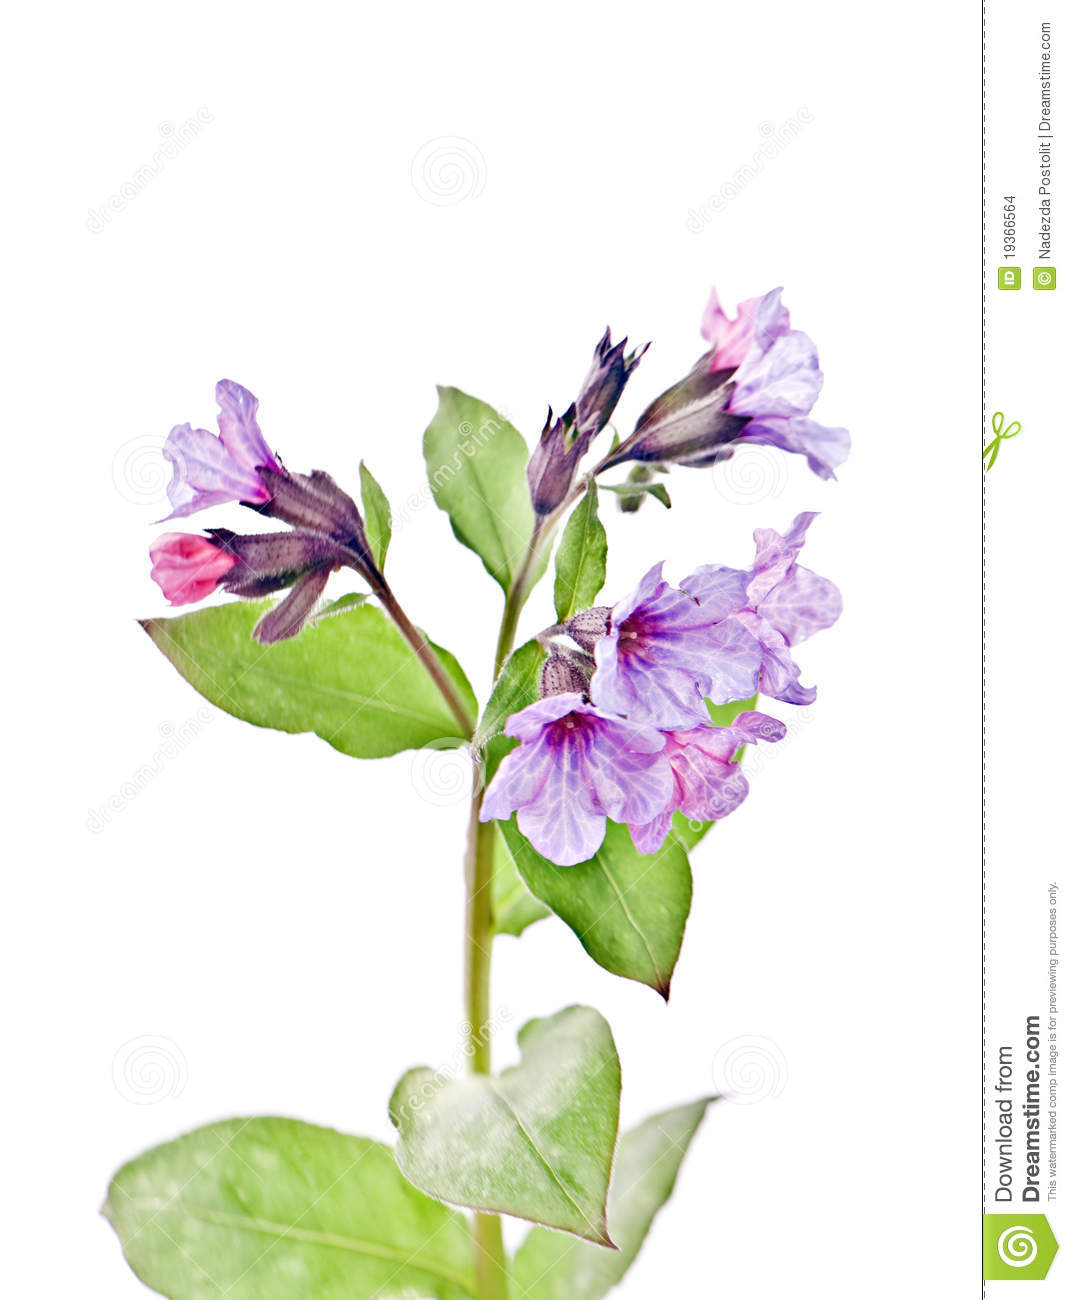 Lungwort, officinalis L. de Pulmonaria,